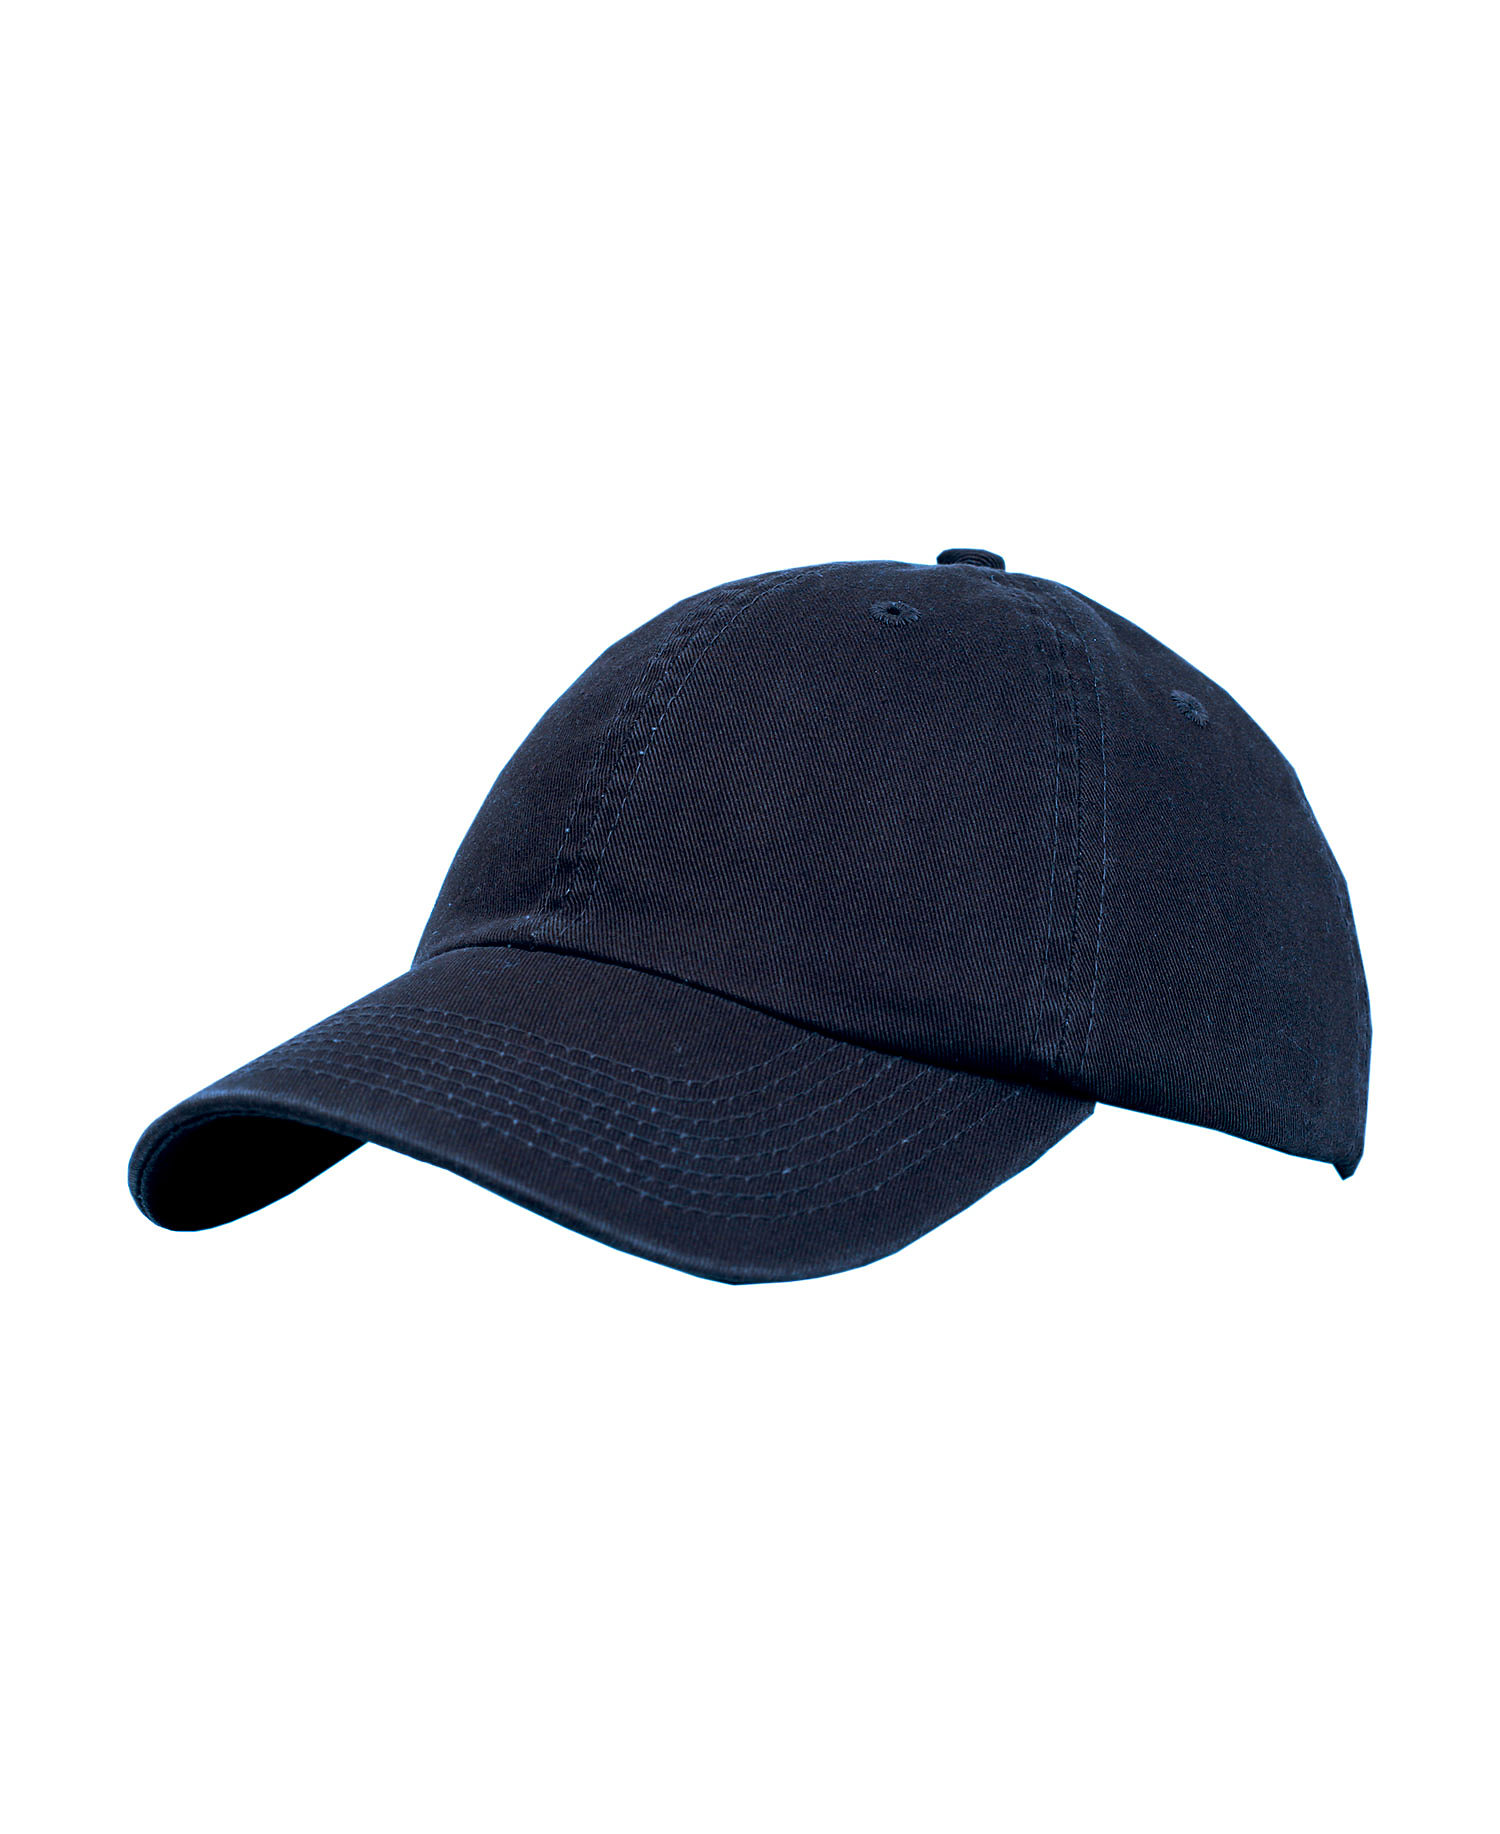 Fahrenheit F0508 - Garment Washed Cotton Cap